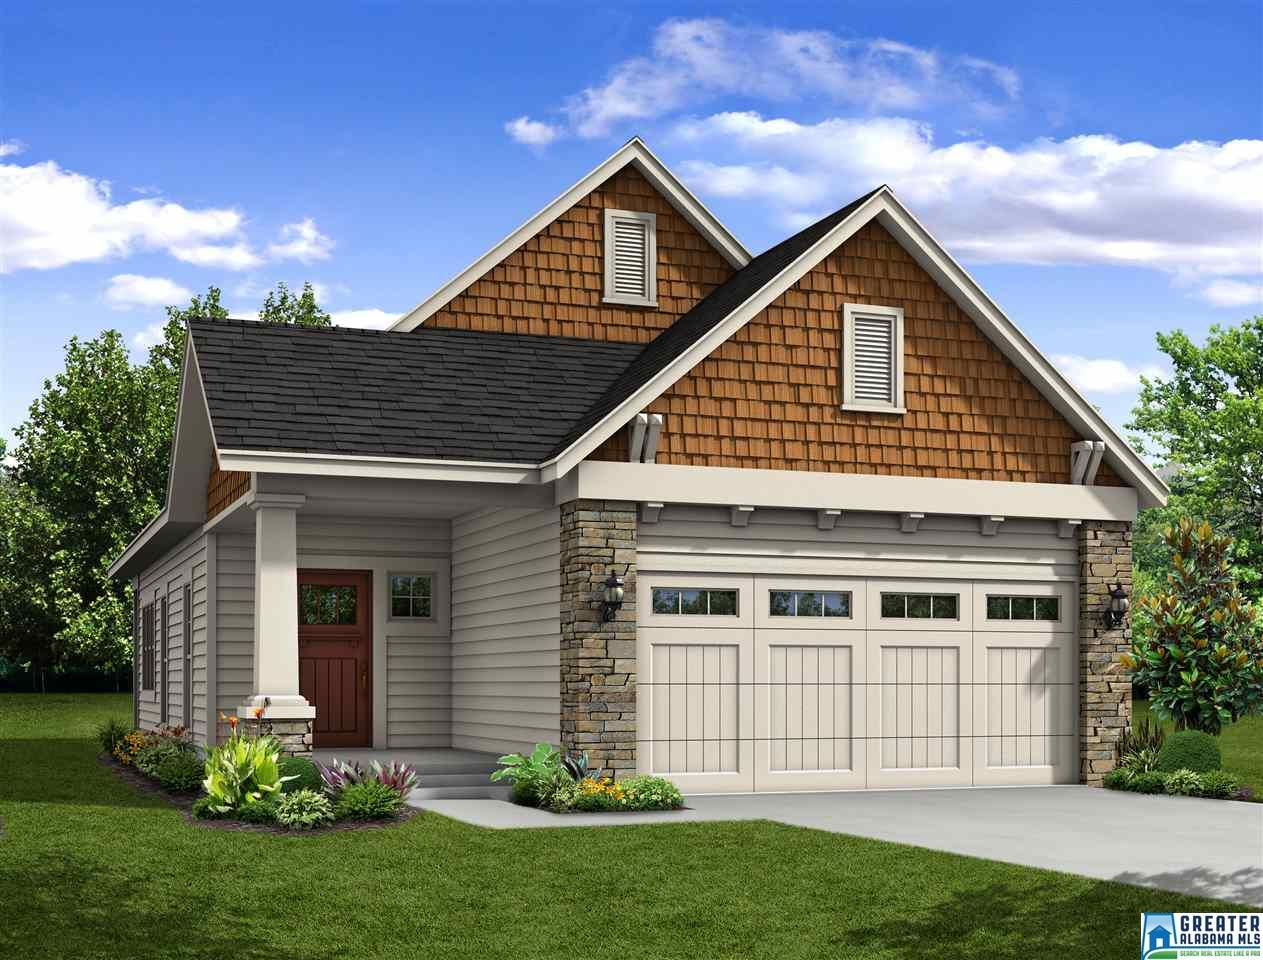 Grants Mill Valley - New homes in Irondale 825492